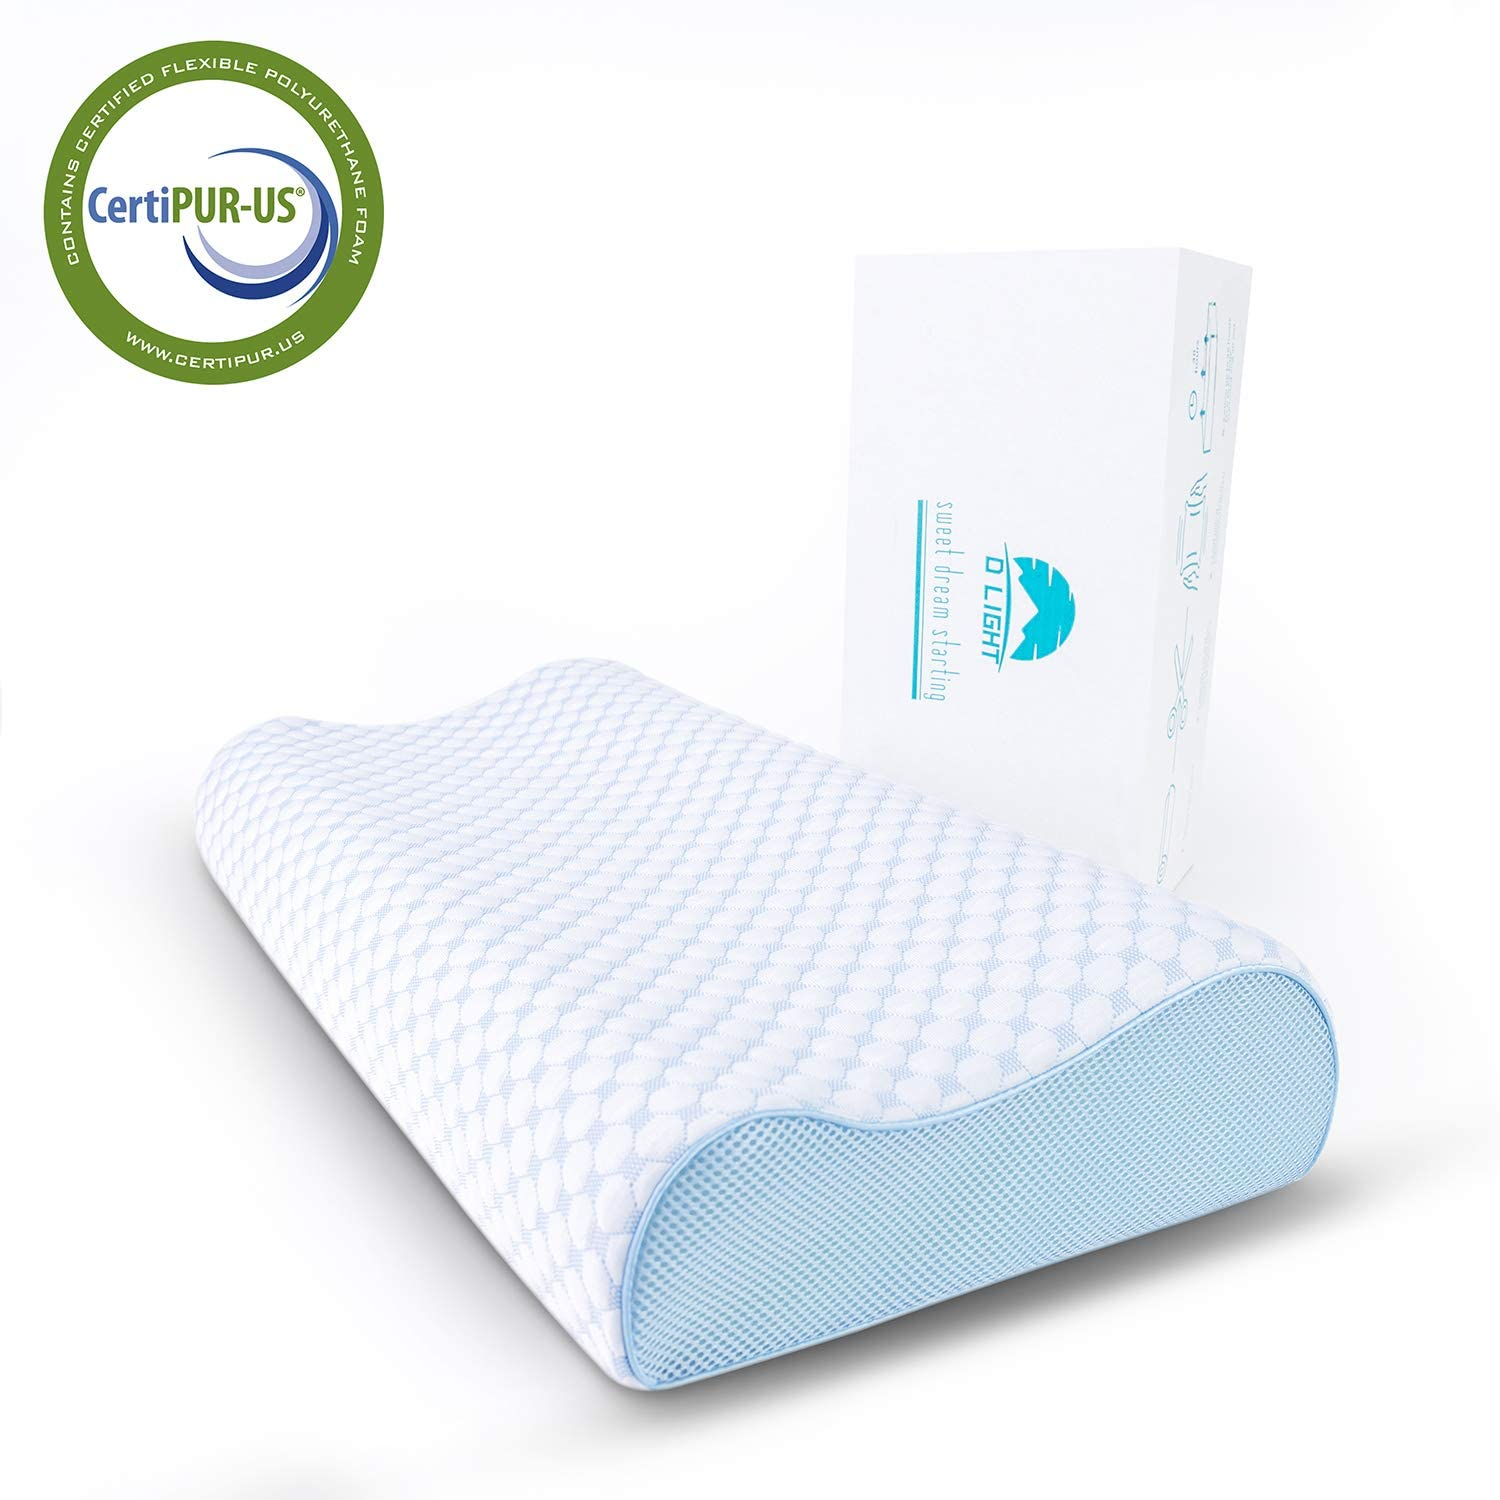 Stomach Sleepers Cervical Bed Pillow to Relieve Neck Pain-Breathable,Supportive for Neck Ergonomic Design for Side Firm Contour-4.7 Inch CertiPUR-US Dlight Contour Memory Foam Pillow Back